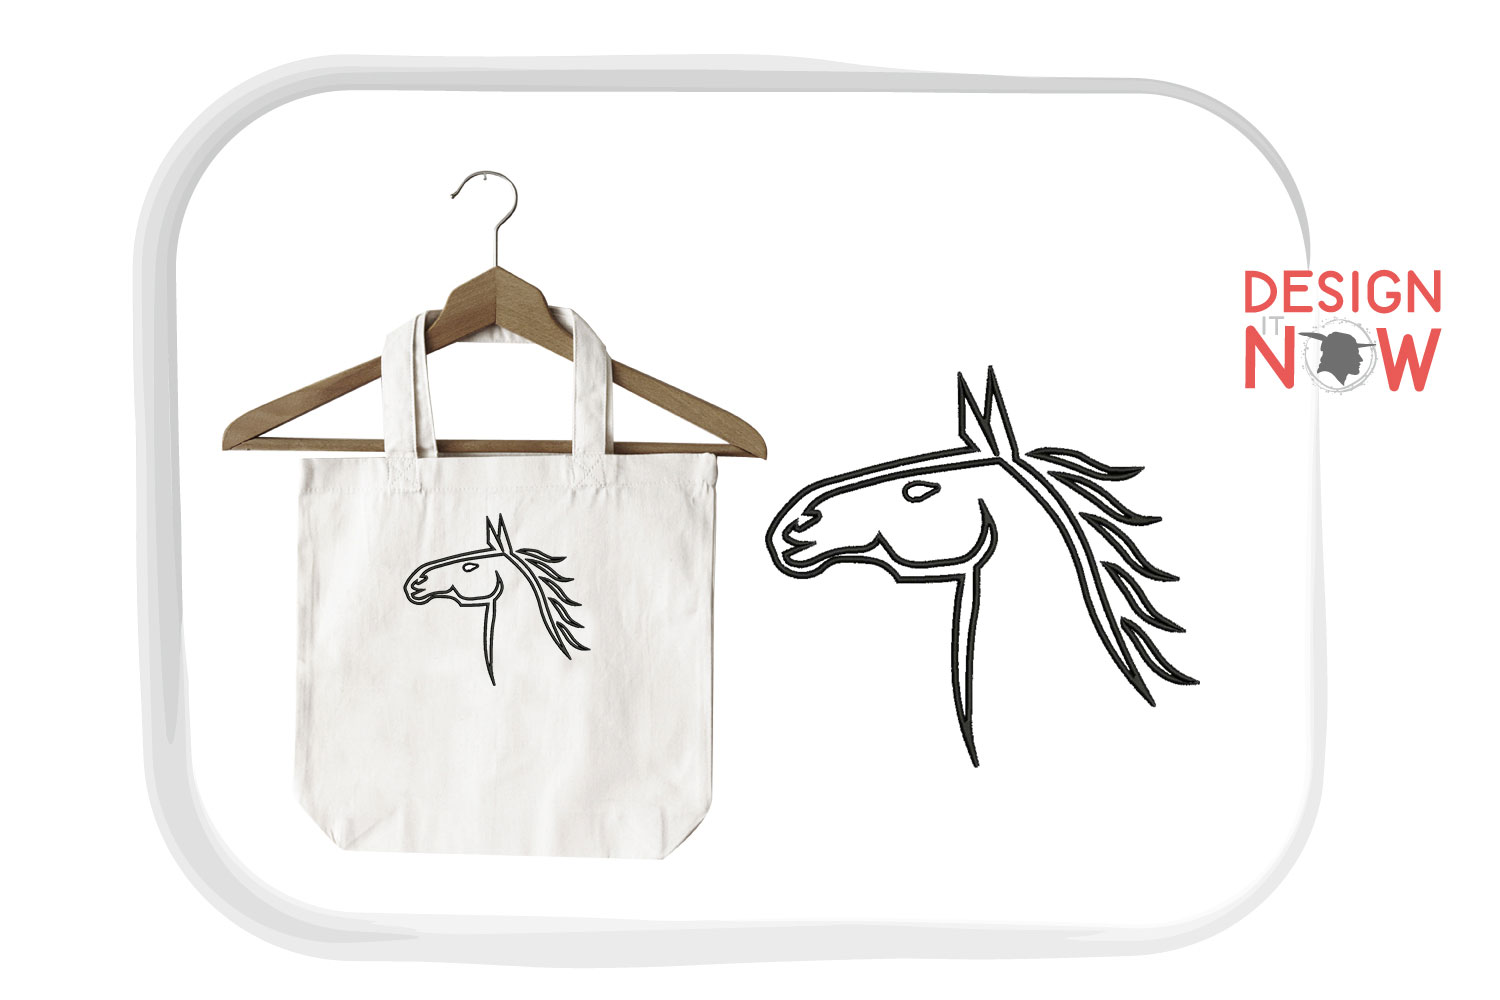 Horse Applique Embroidery Design, Horse Embroidery Pattern example image 3